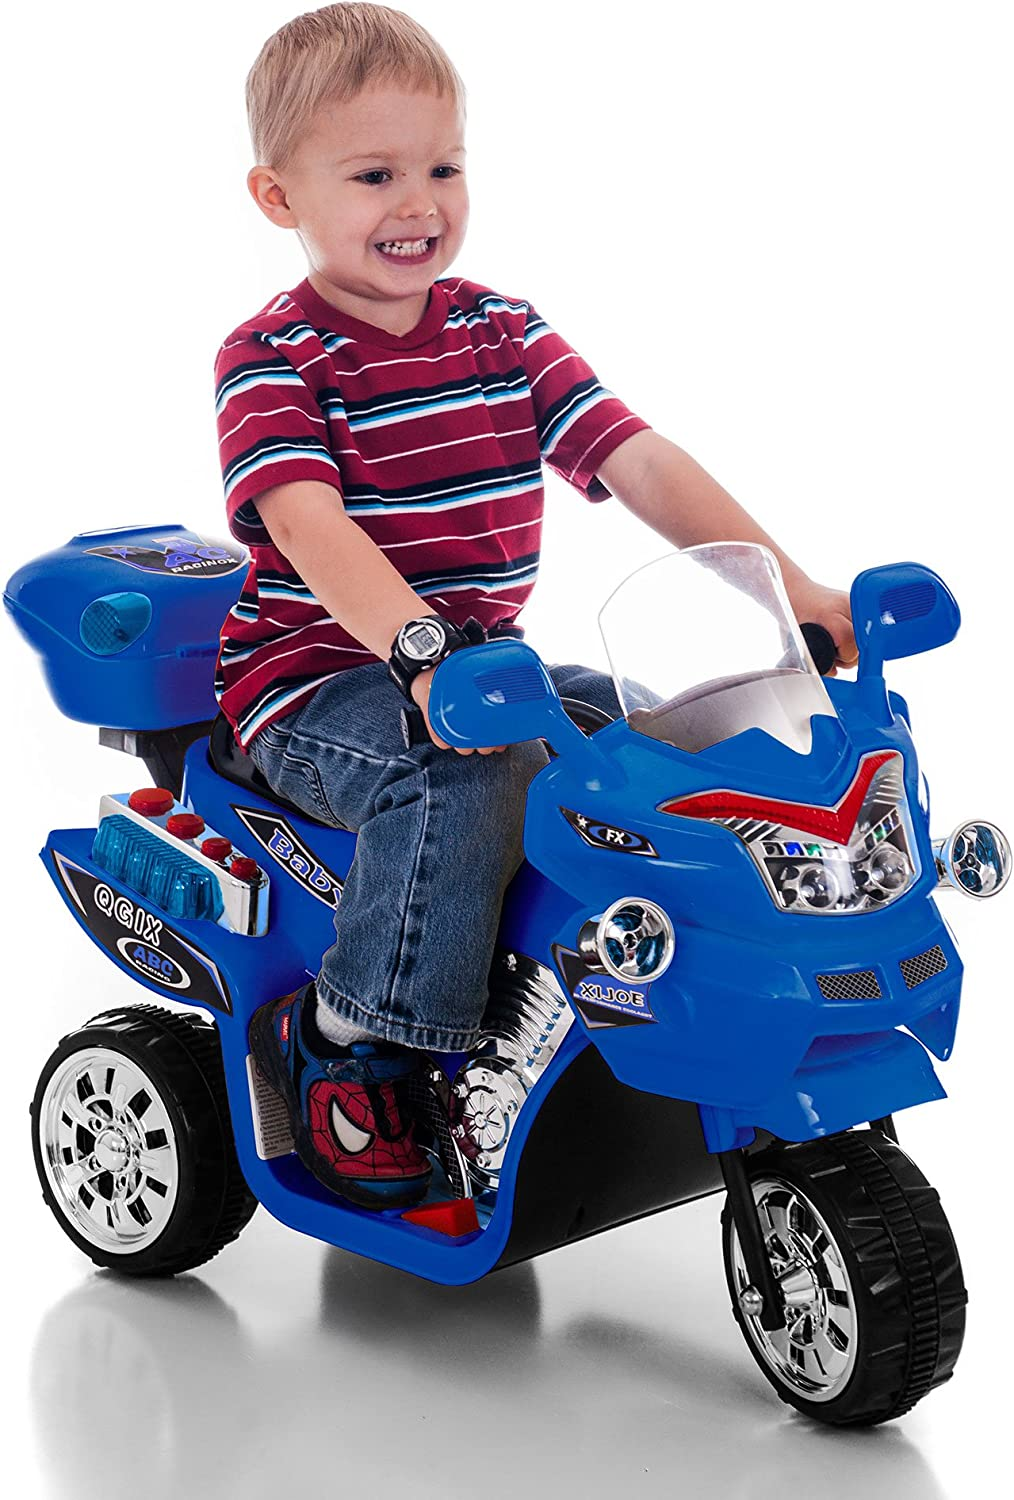 Ride on Toy Red FX 3 Wheel Motorcycle Trike for Kids by Rockin Rollers Battery Powered Ride on Toys for Boys and Girls 2-5 Year Old